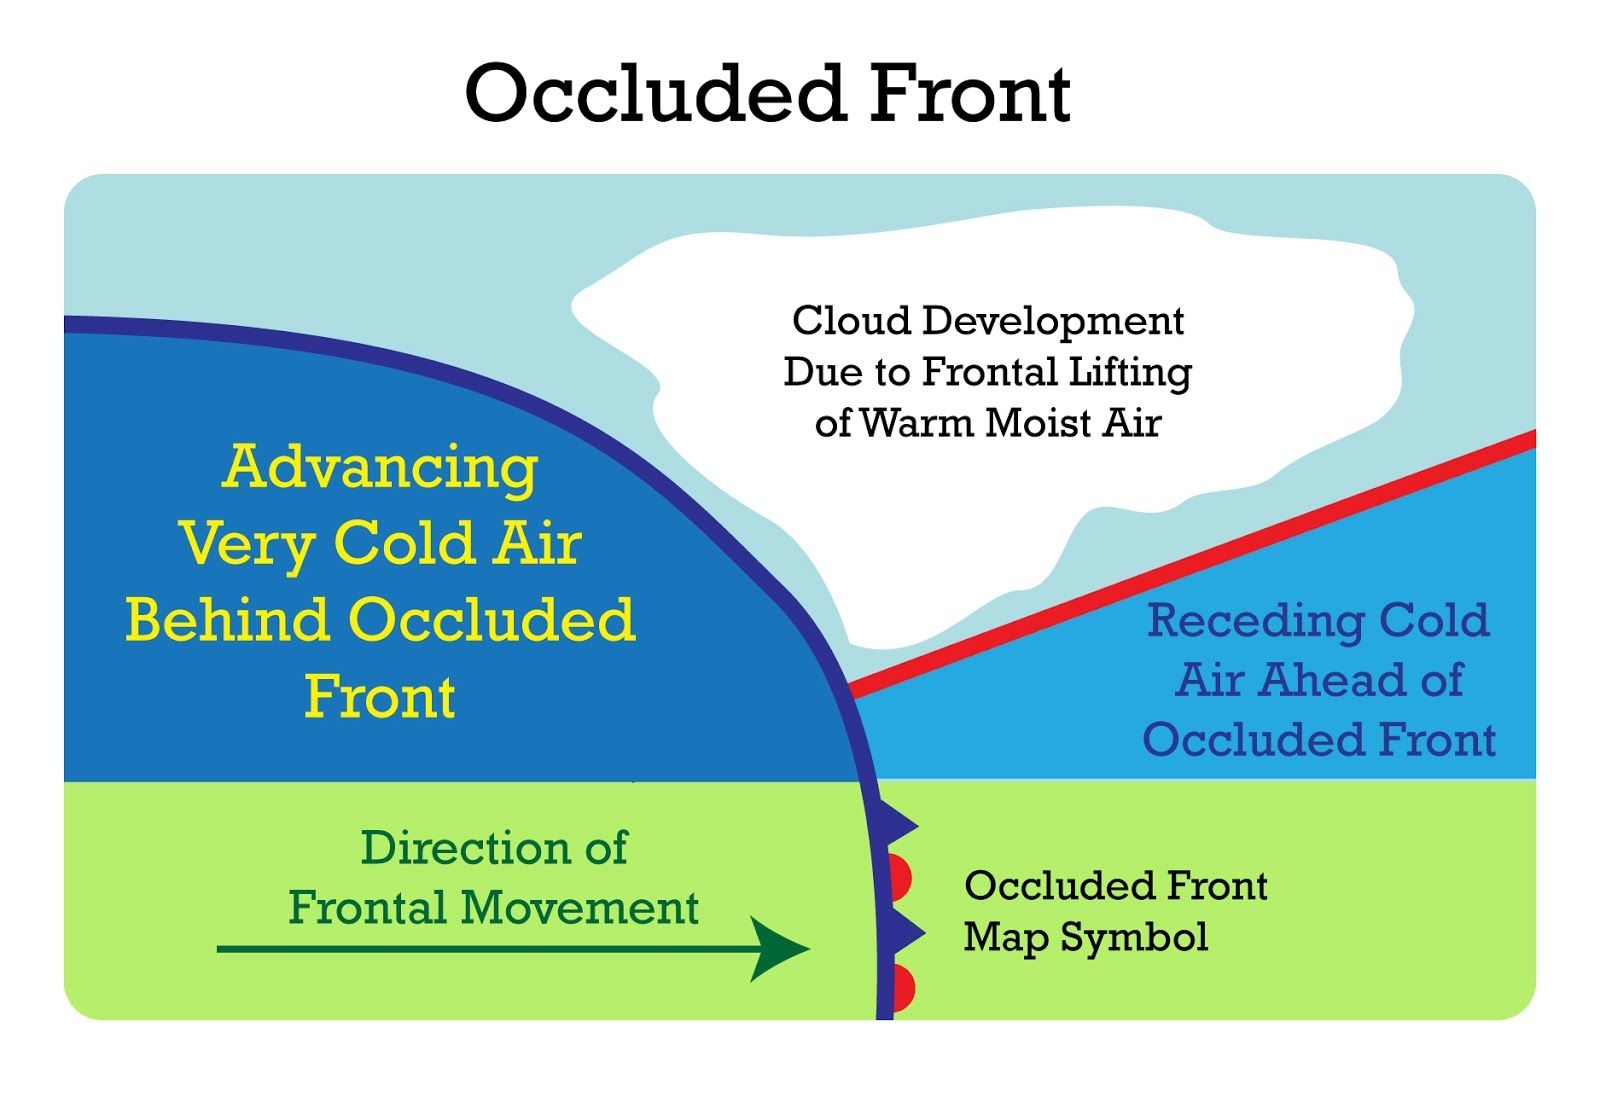 Coldoccluded front approach brings weather sequence like